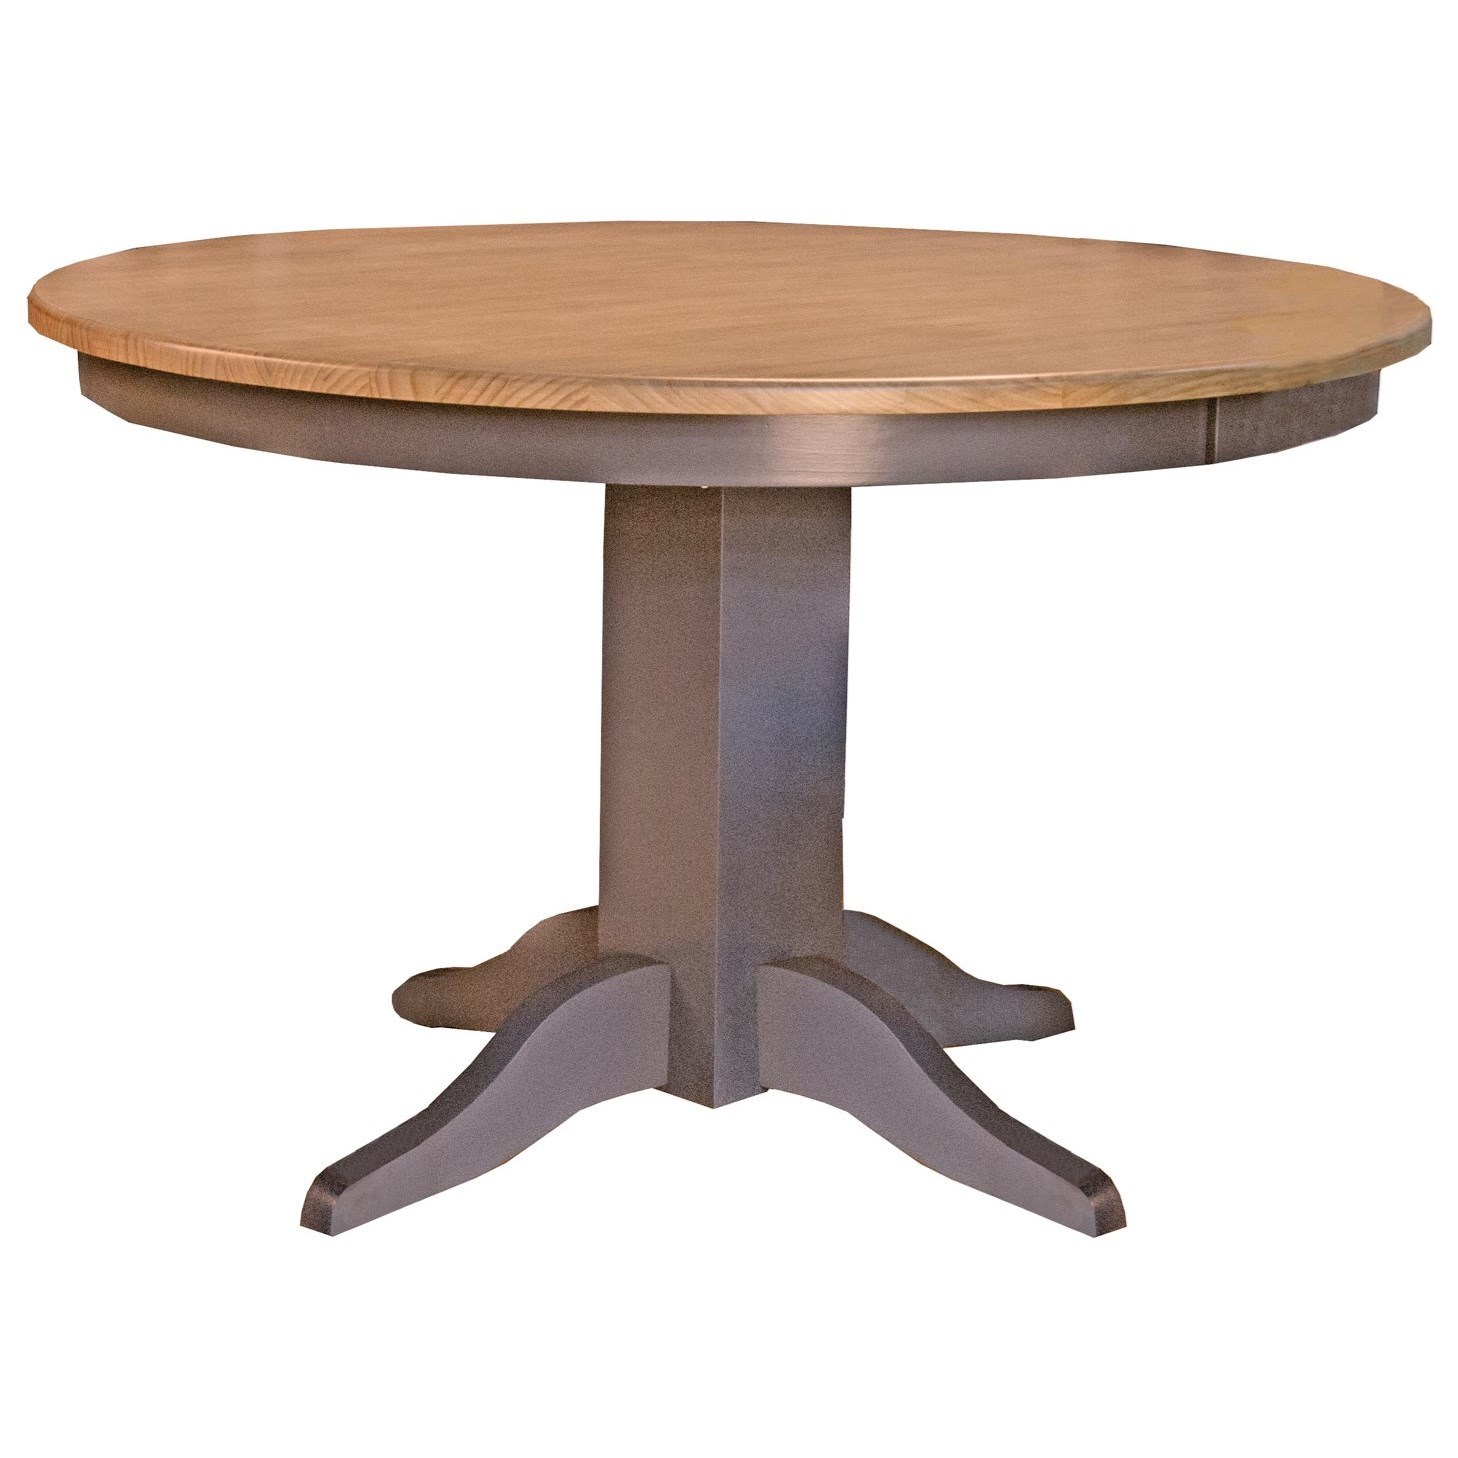 "Port Townsend 48"" Round Table by A-A at Walker's Furniture"